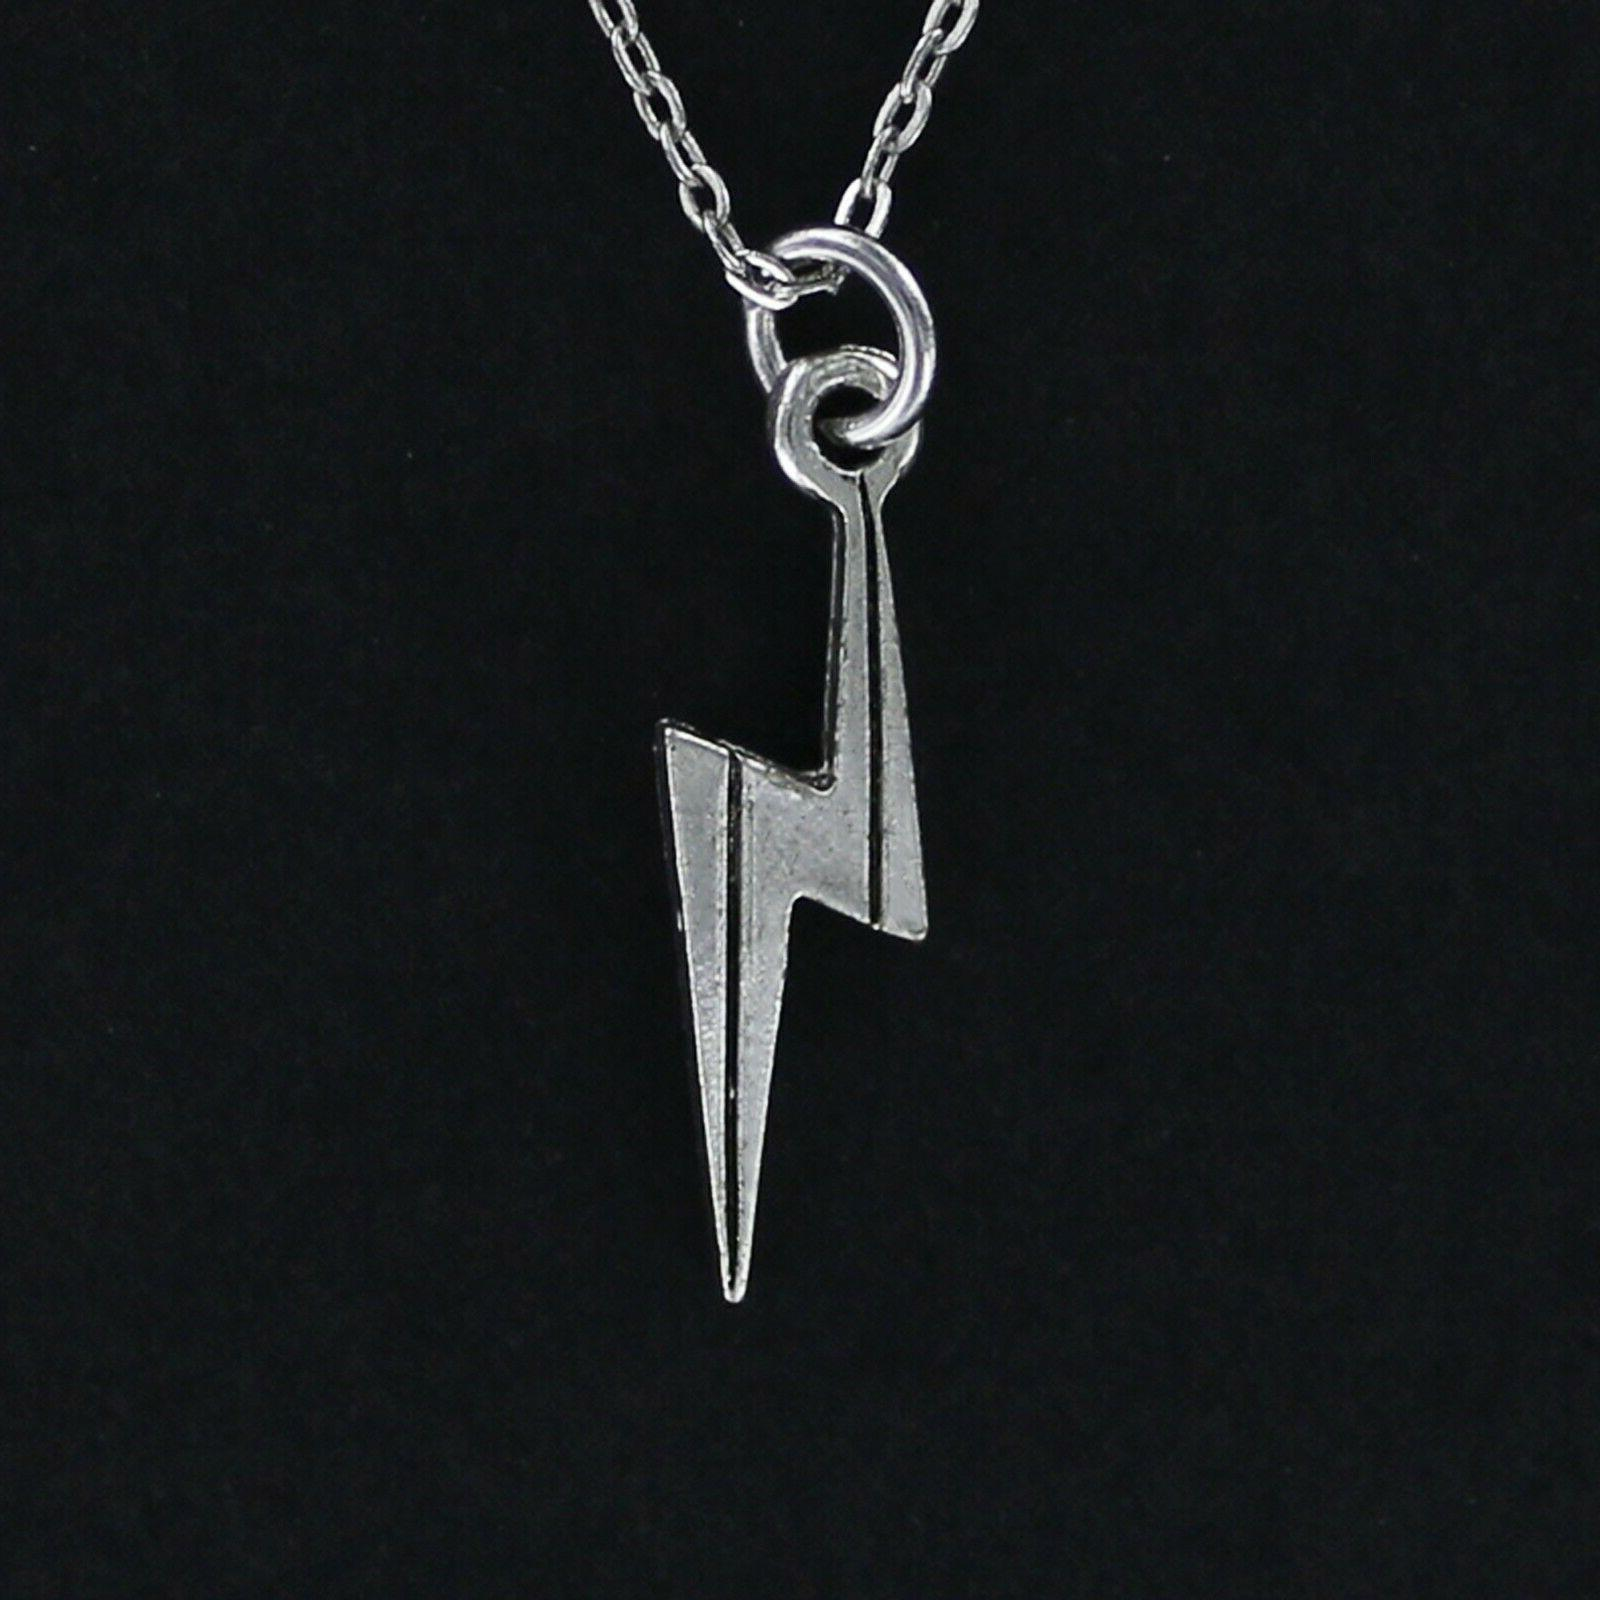 lightning bolt necklace pewter charm on chain